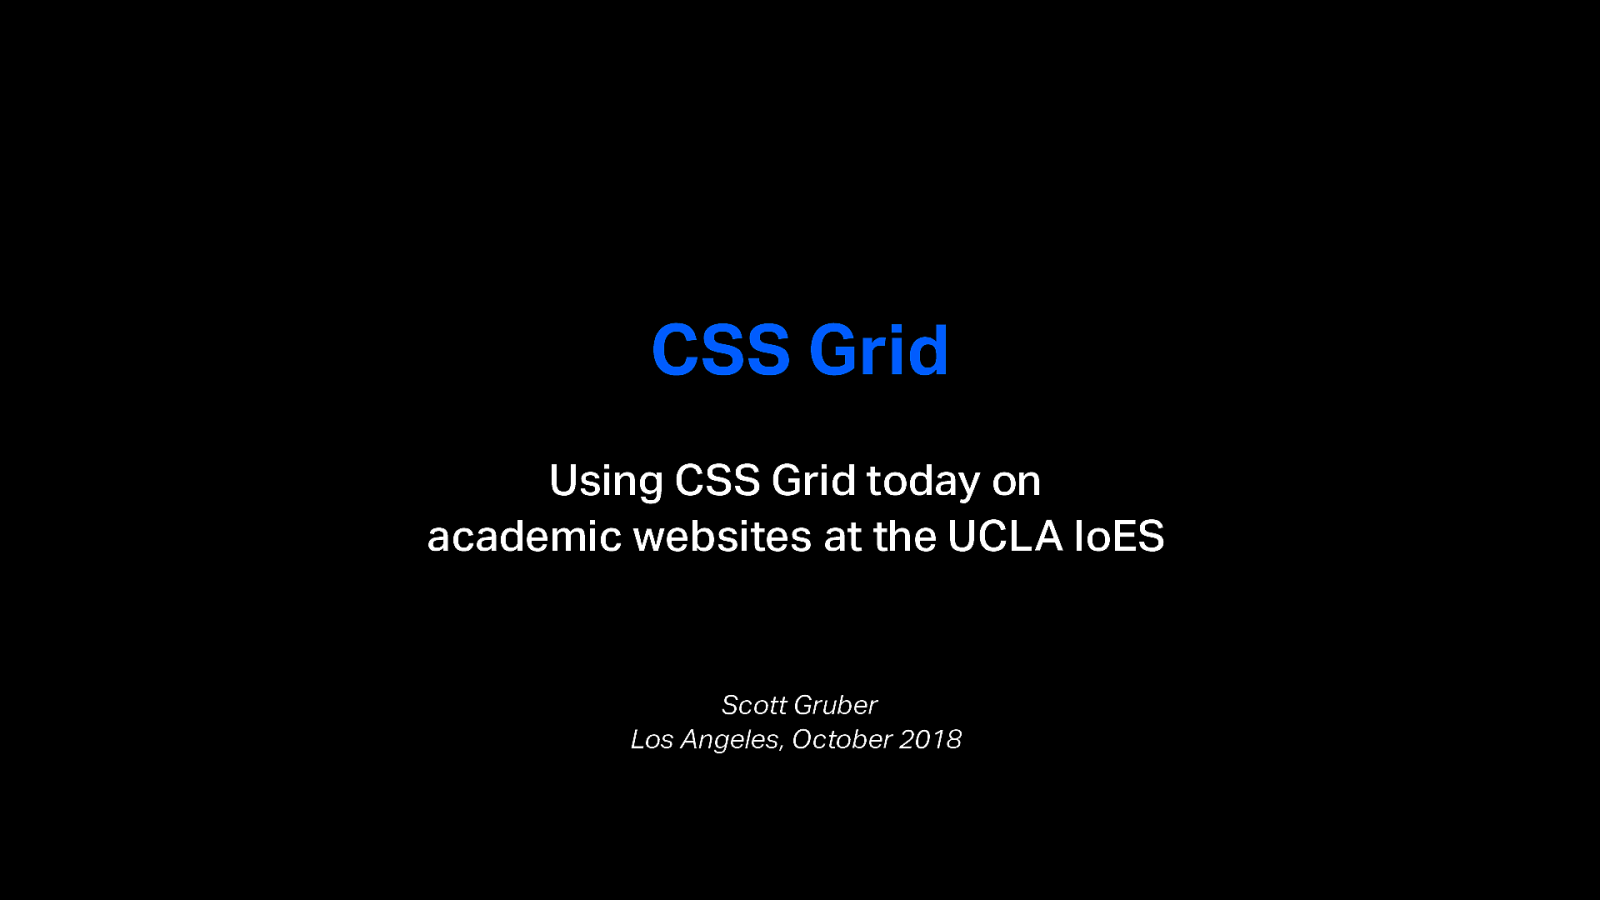 Using CSS Grid on academic sites at the UCLA IoES